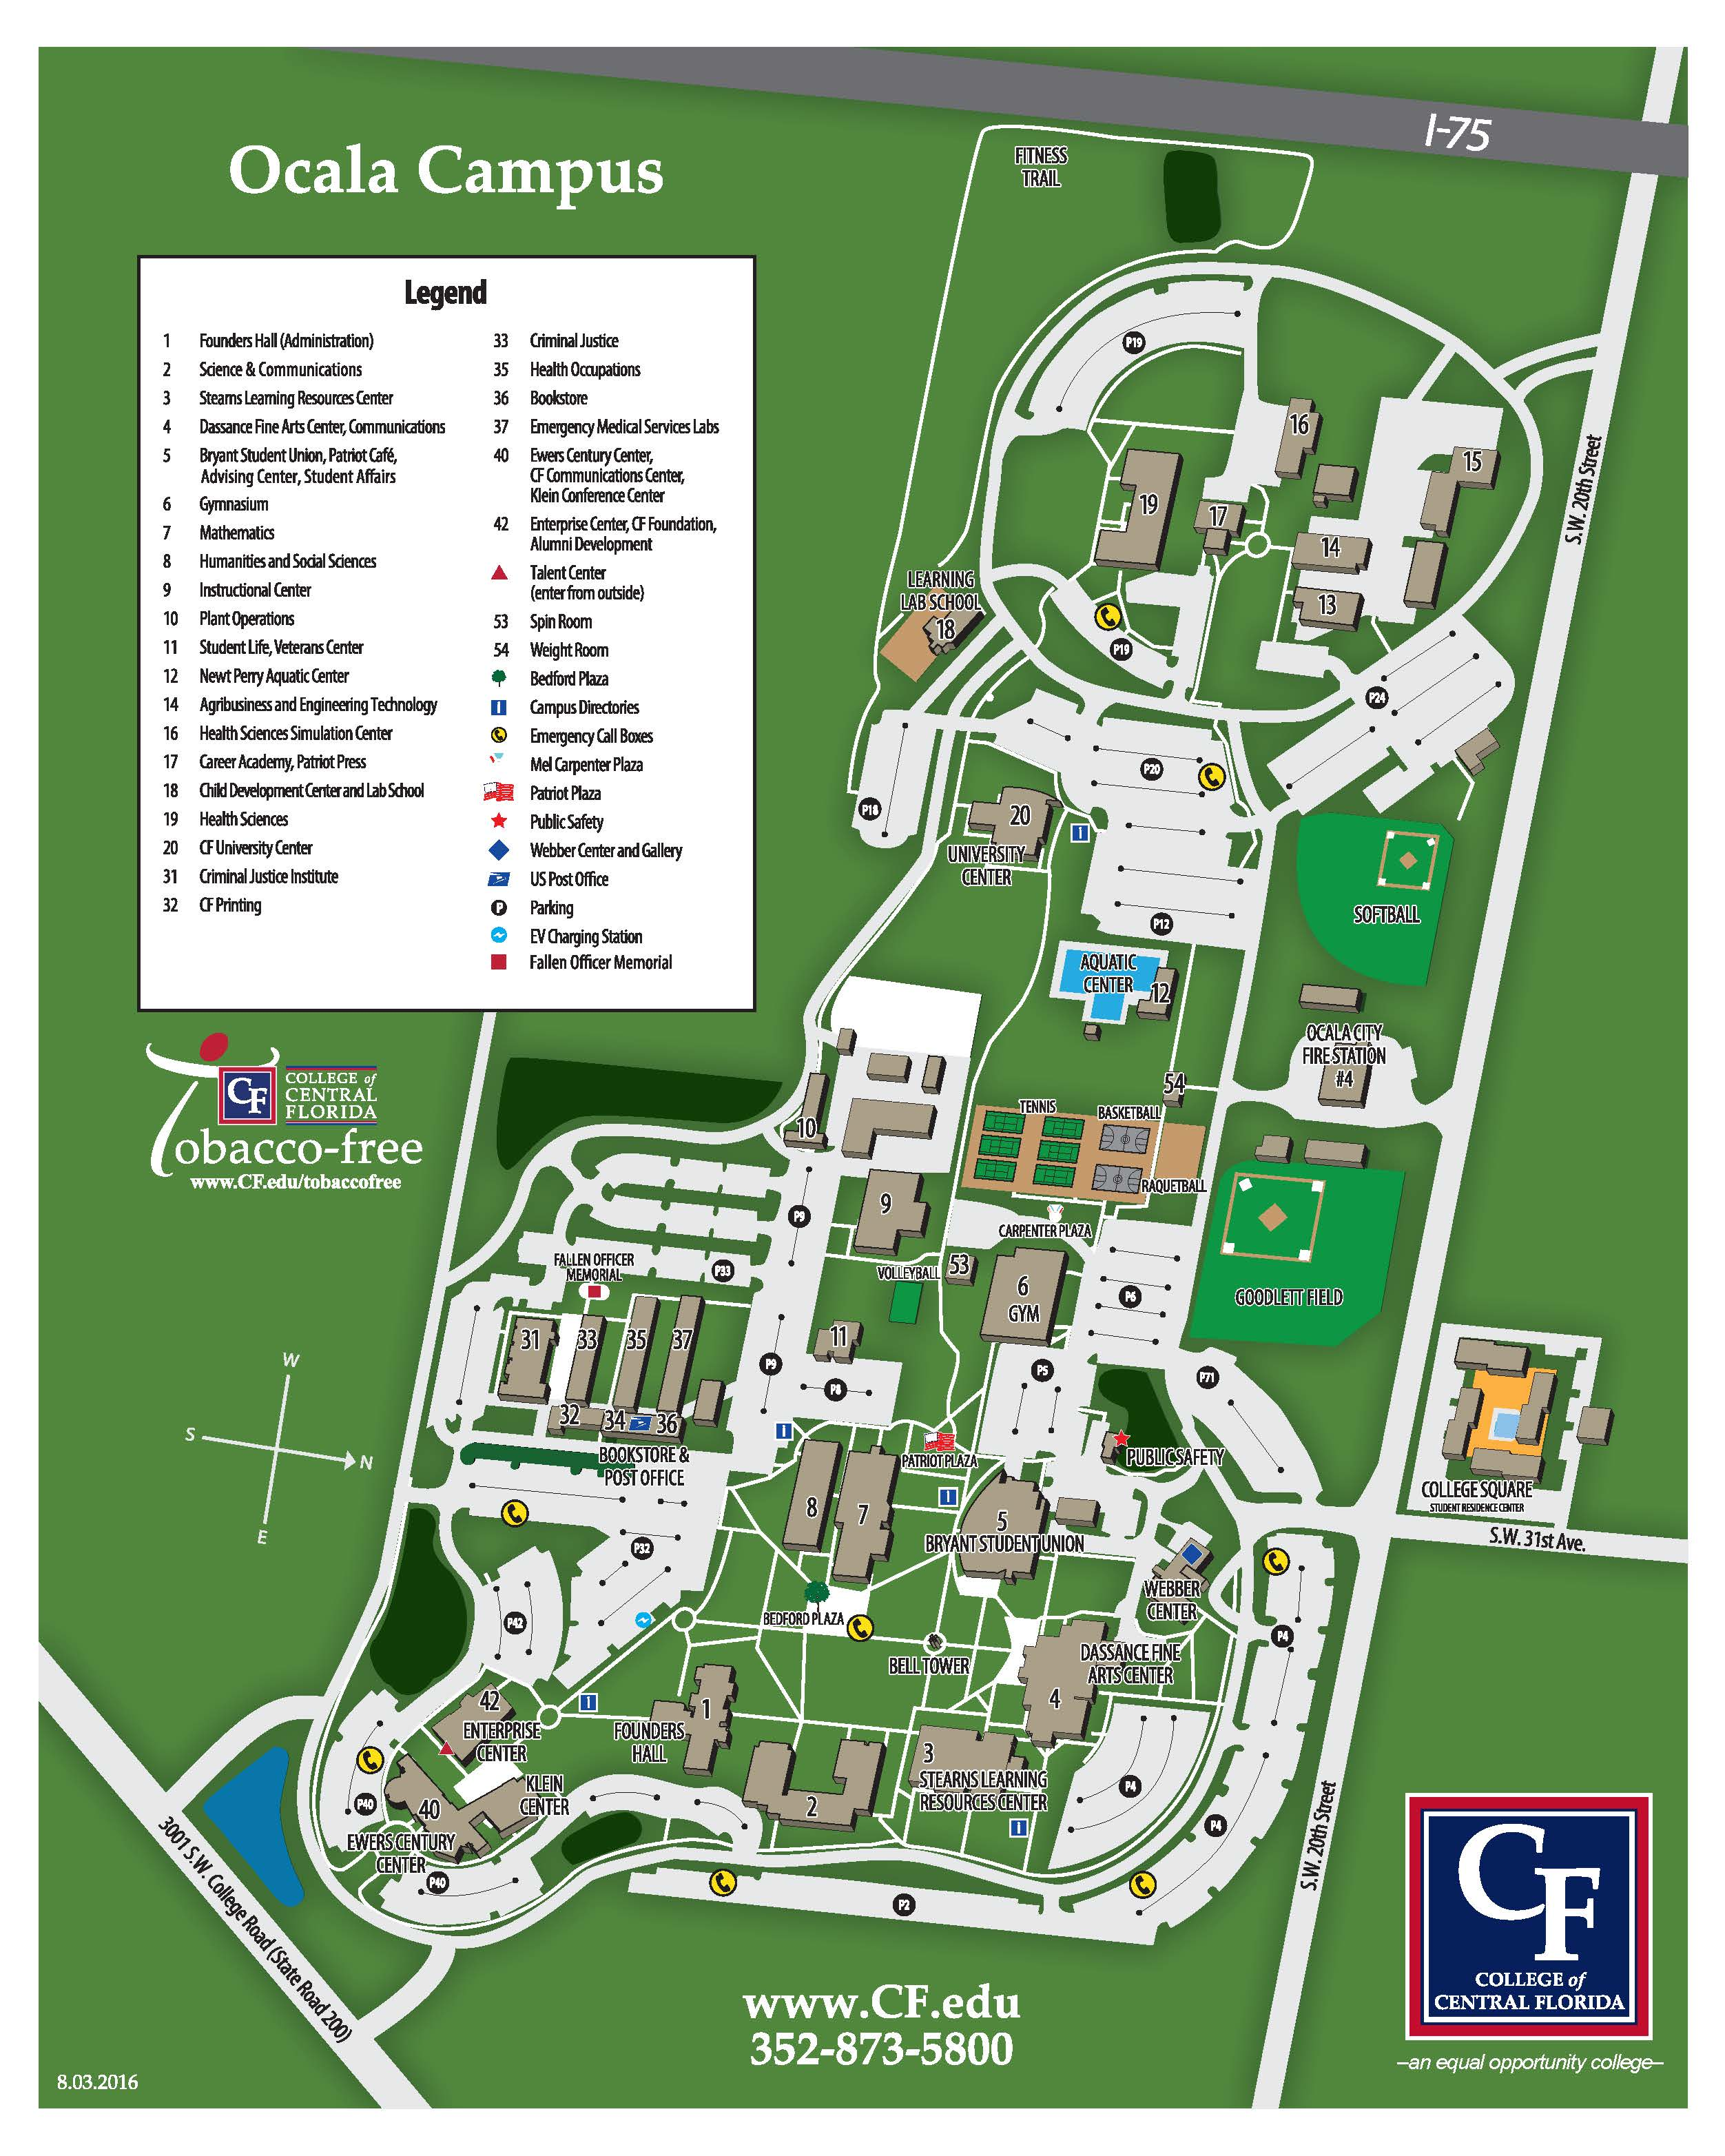 Florida Central Map.College Of Central Florida Ocala Campus Map